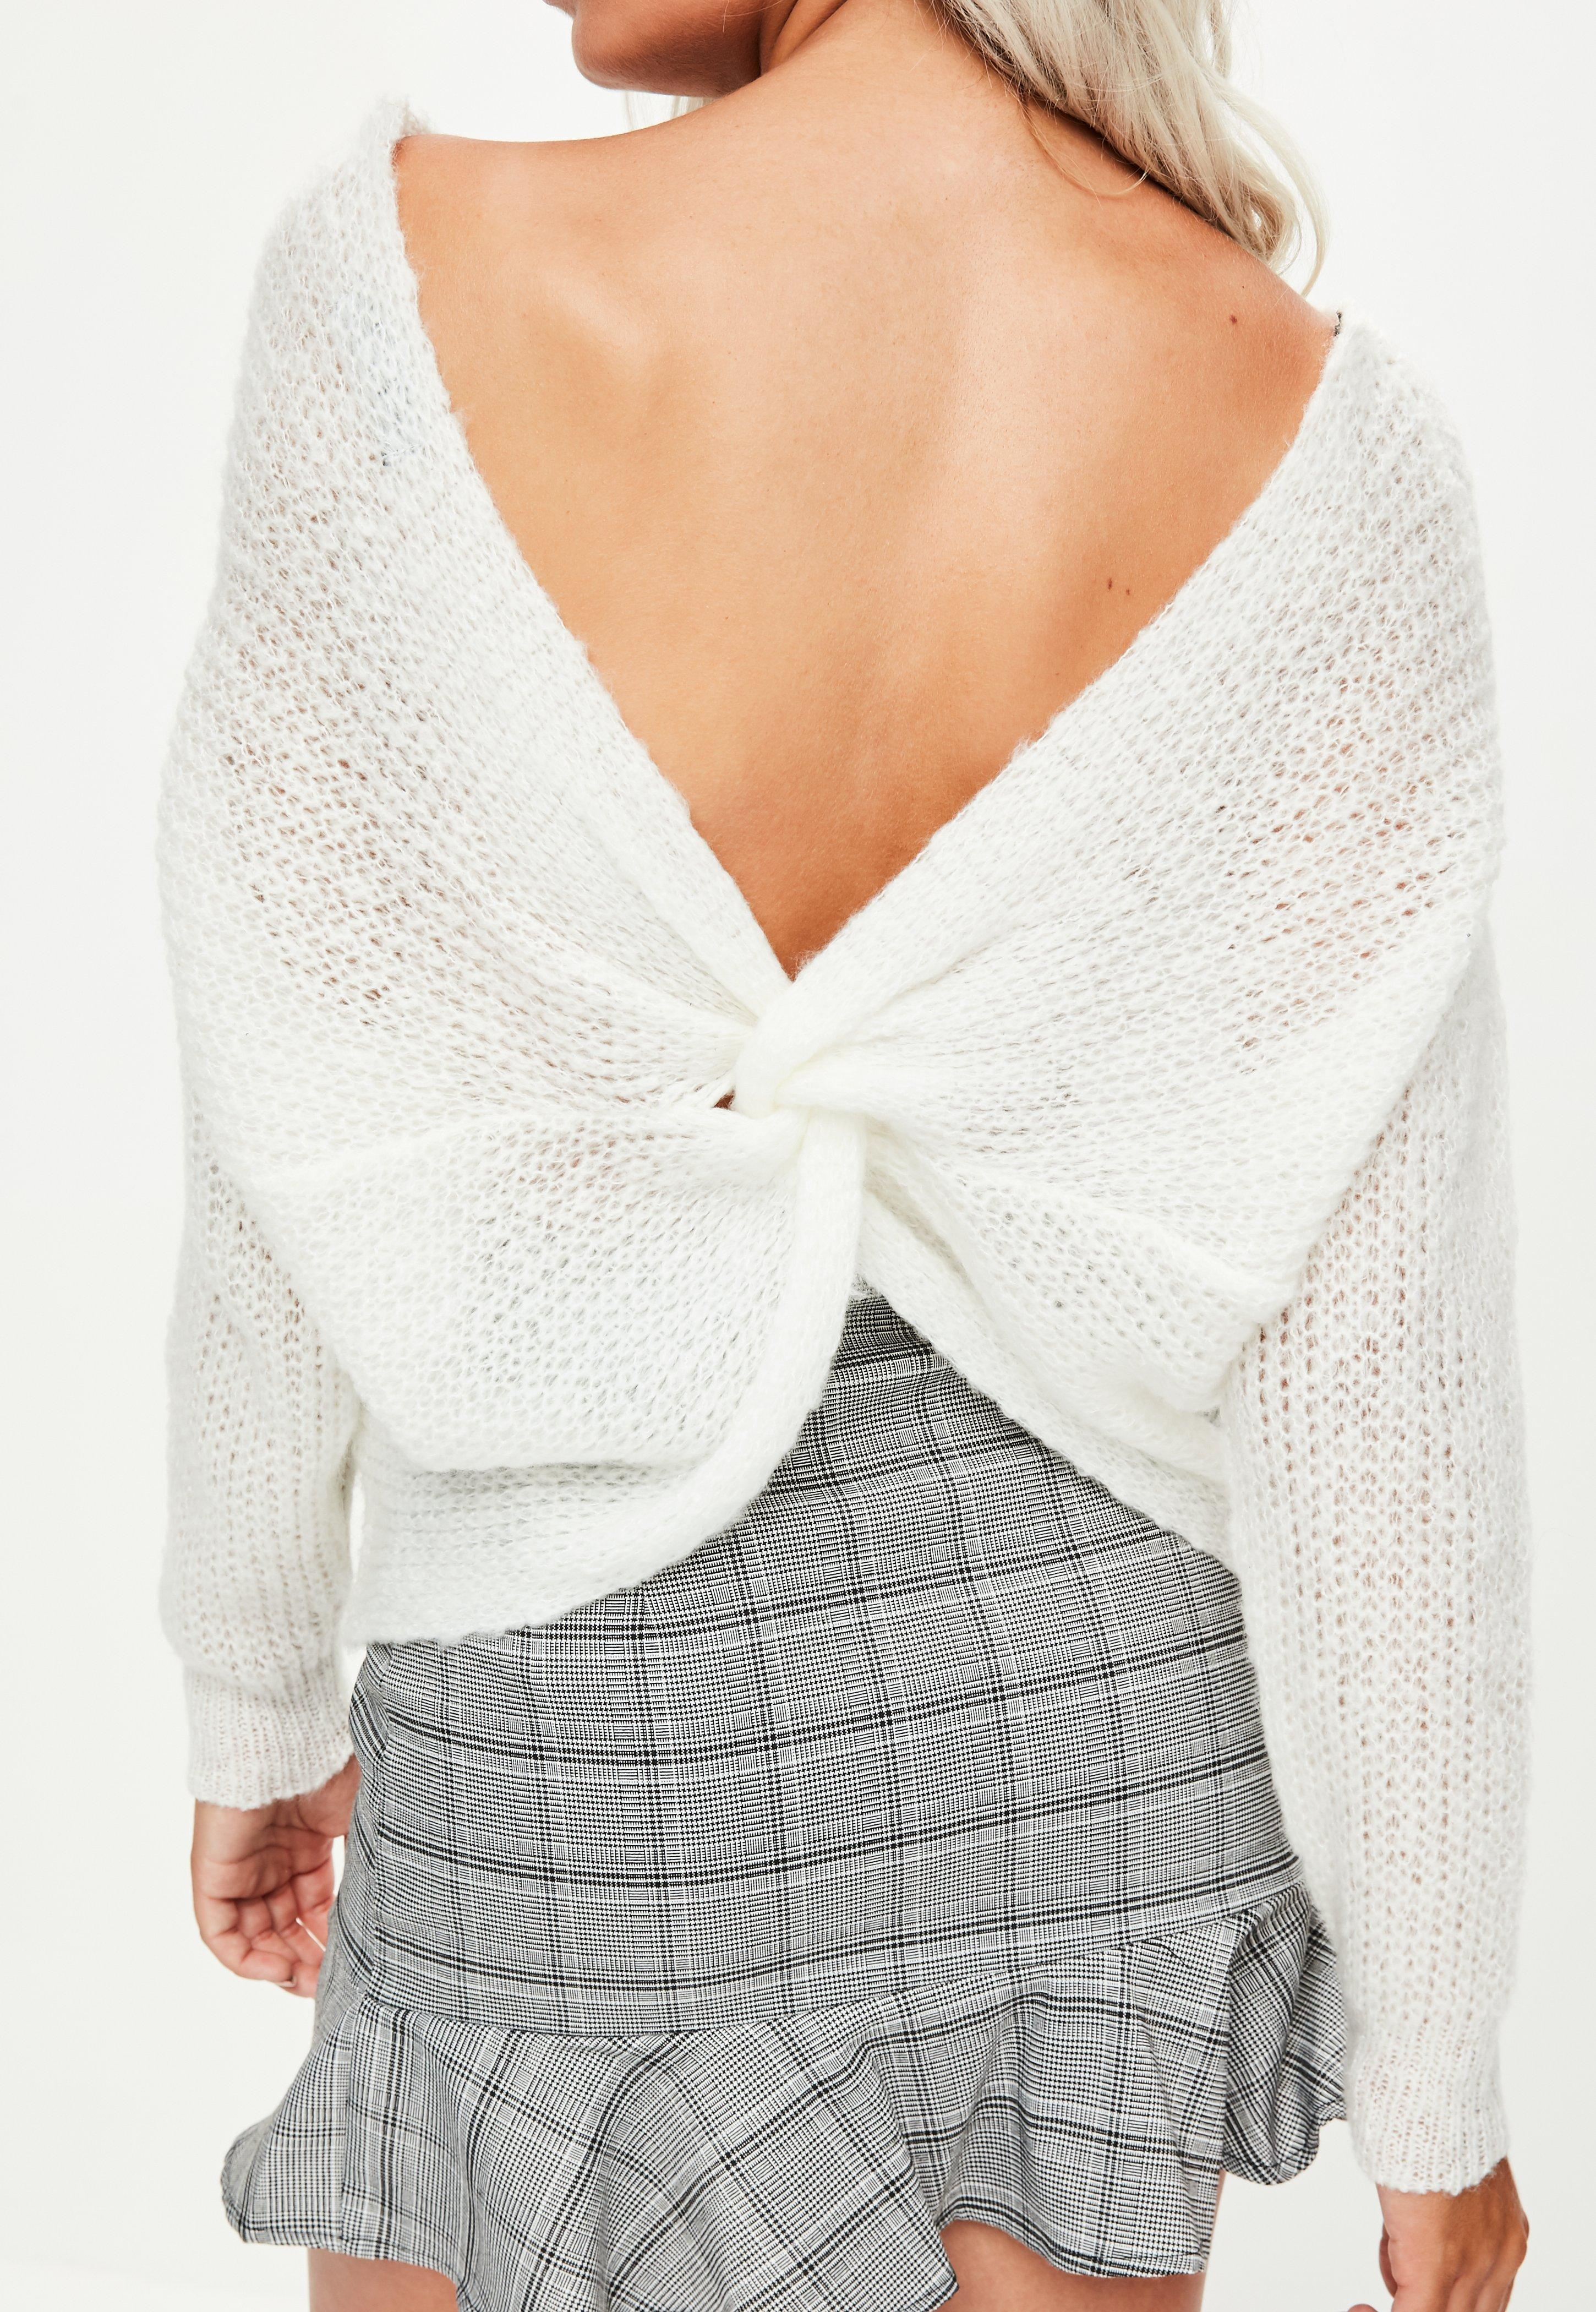 Lyst - Missguided White Fluffy Yarn Twist Back Jumper in White fb7cac968